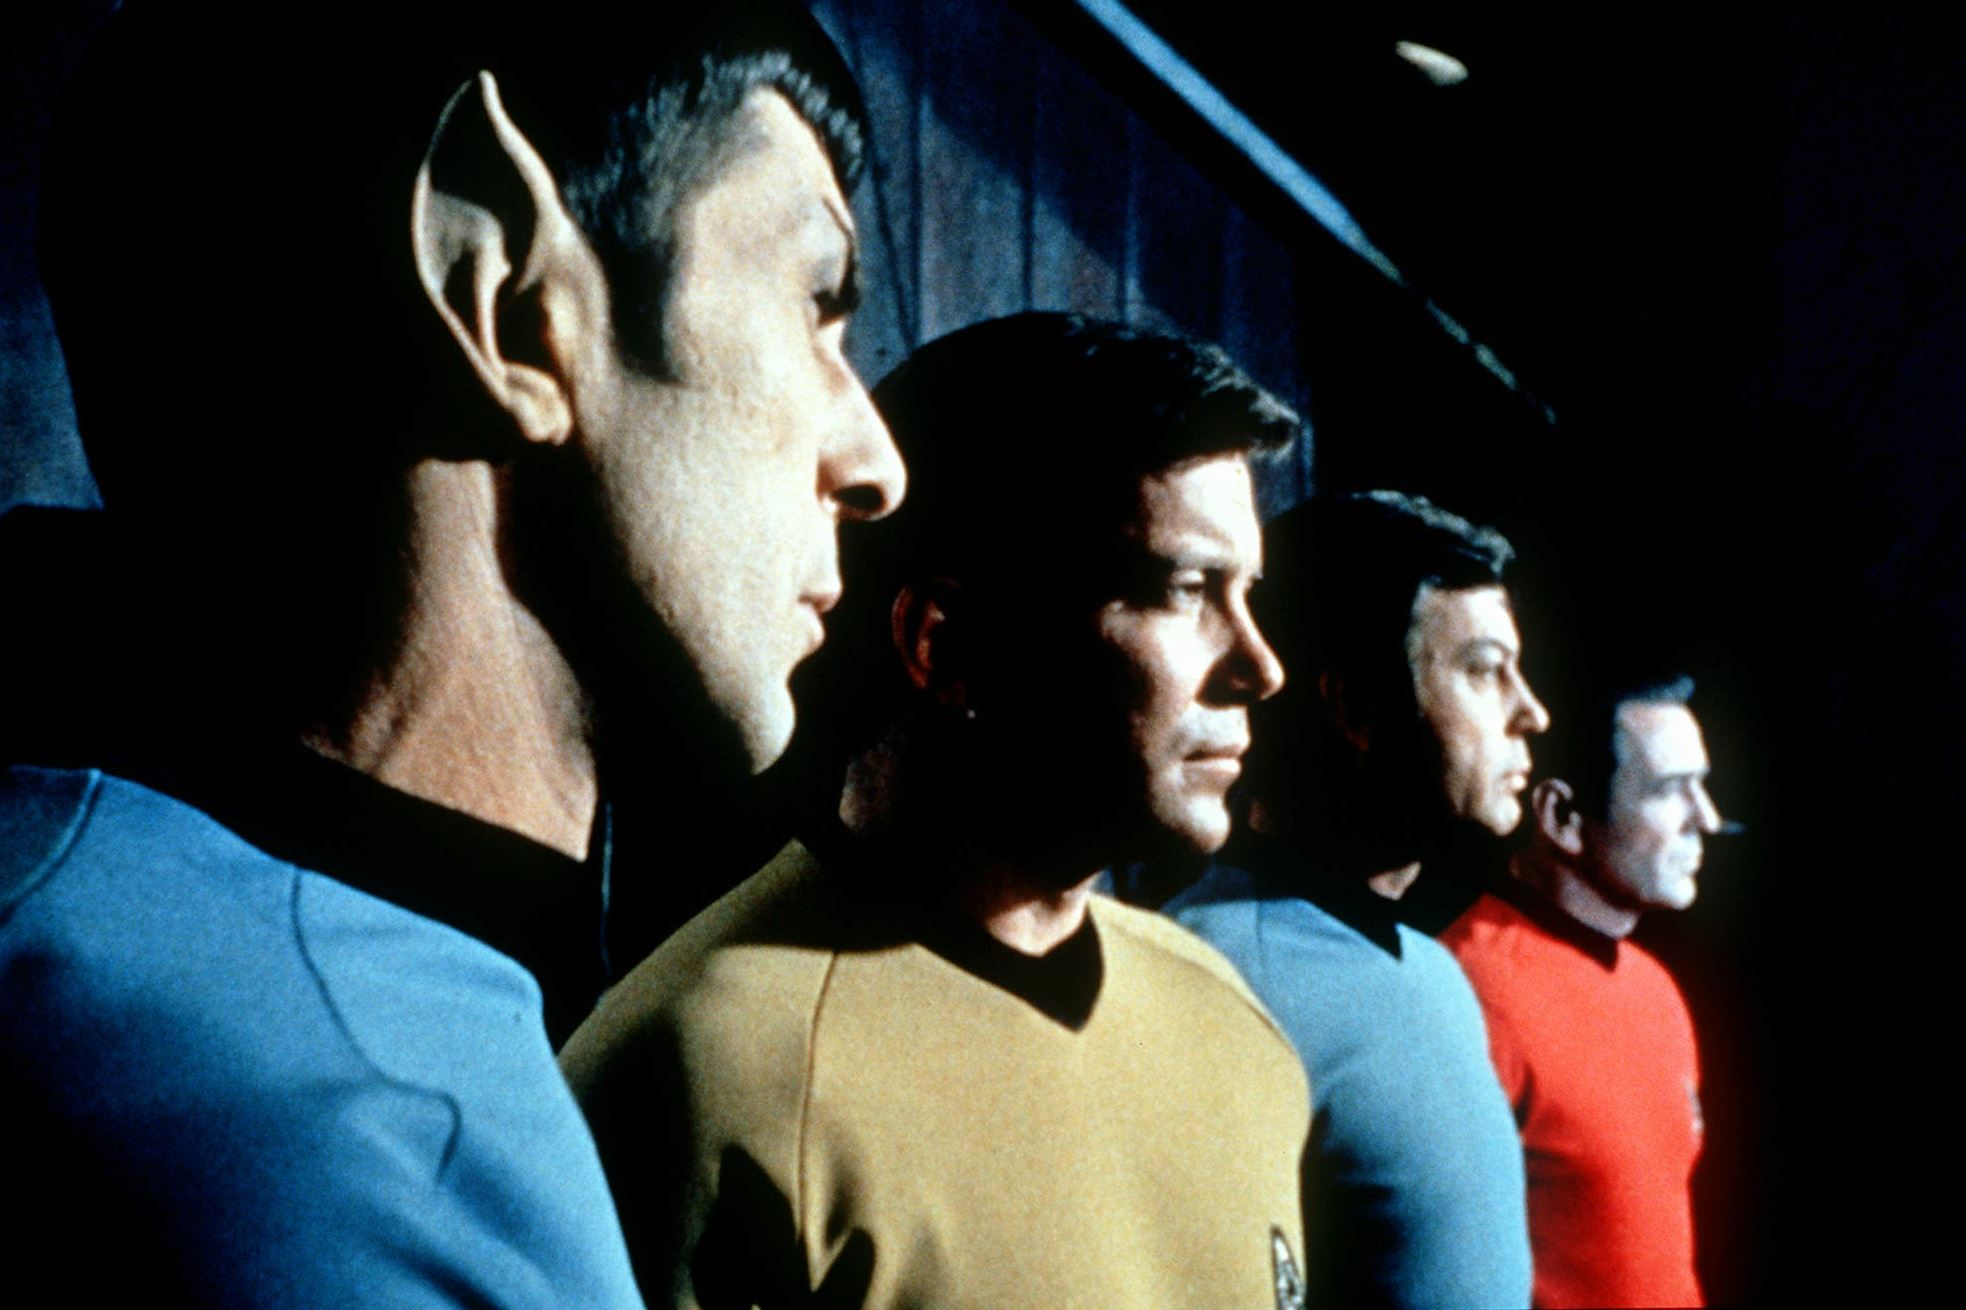 Facebook celebrates Star Trek's 50th anniversary with new reactions